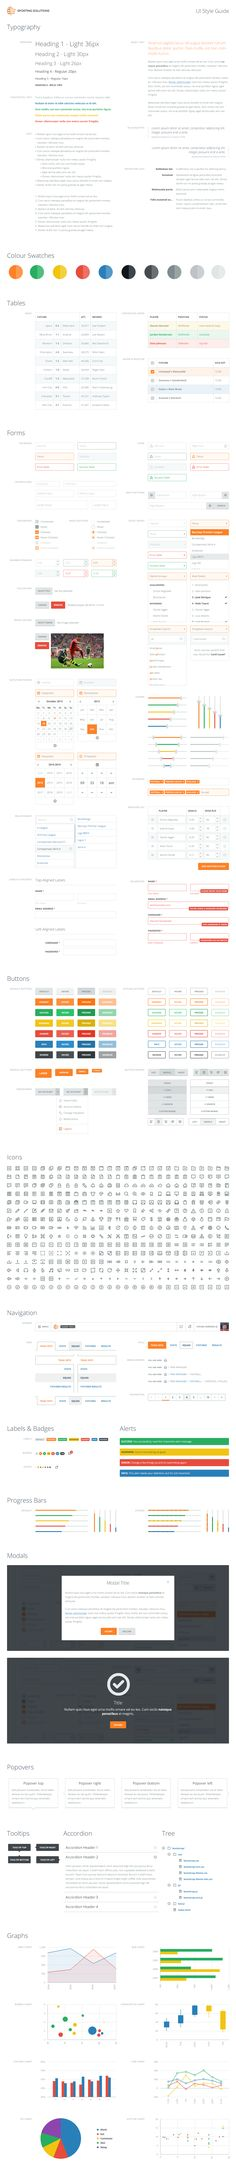 A very extensive UI Style Guide